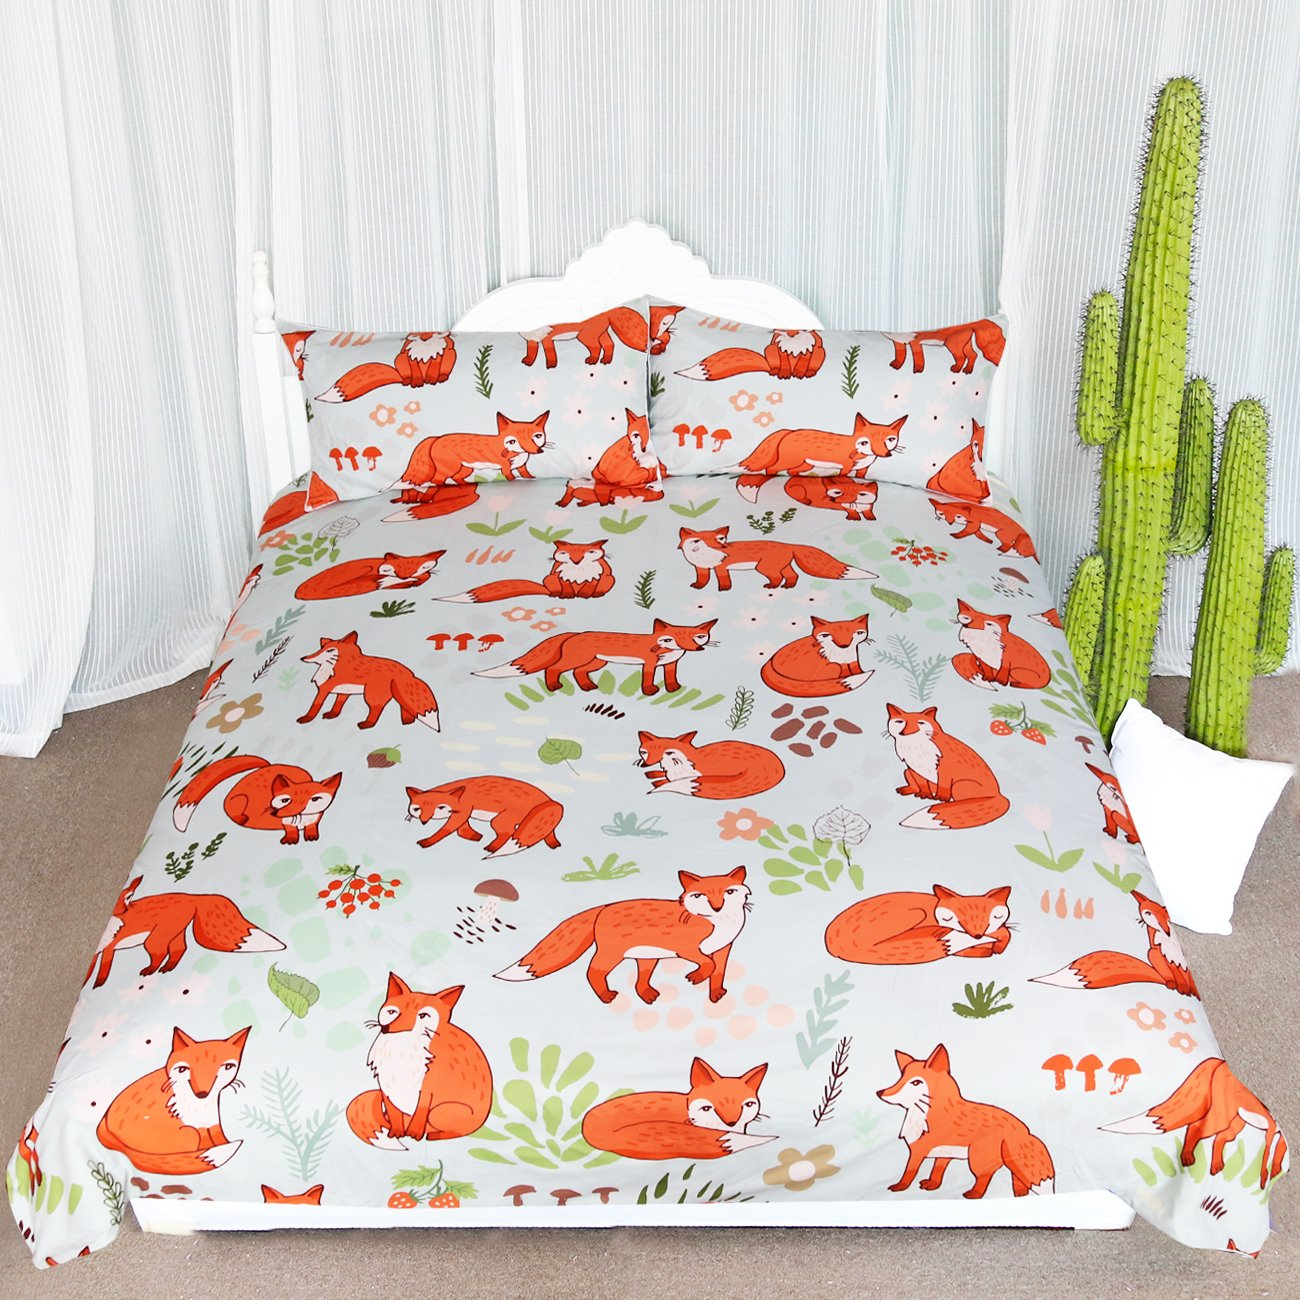 ARIGHTEX Woodland Fox Bedding Cartoon Forest Fruits Duvet Cover Romantic Orange Foxes Comforter Set Kids Nature Duvet Cover (Full)